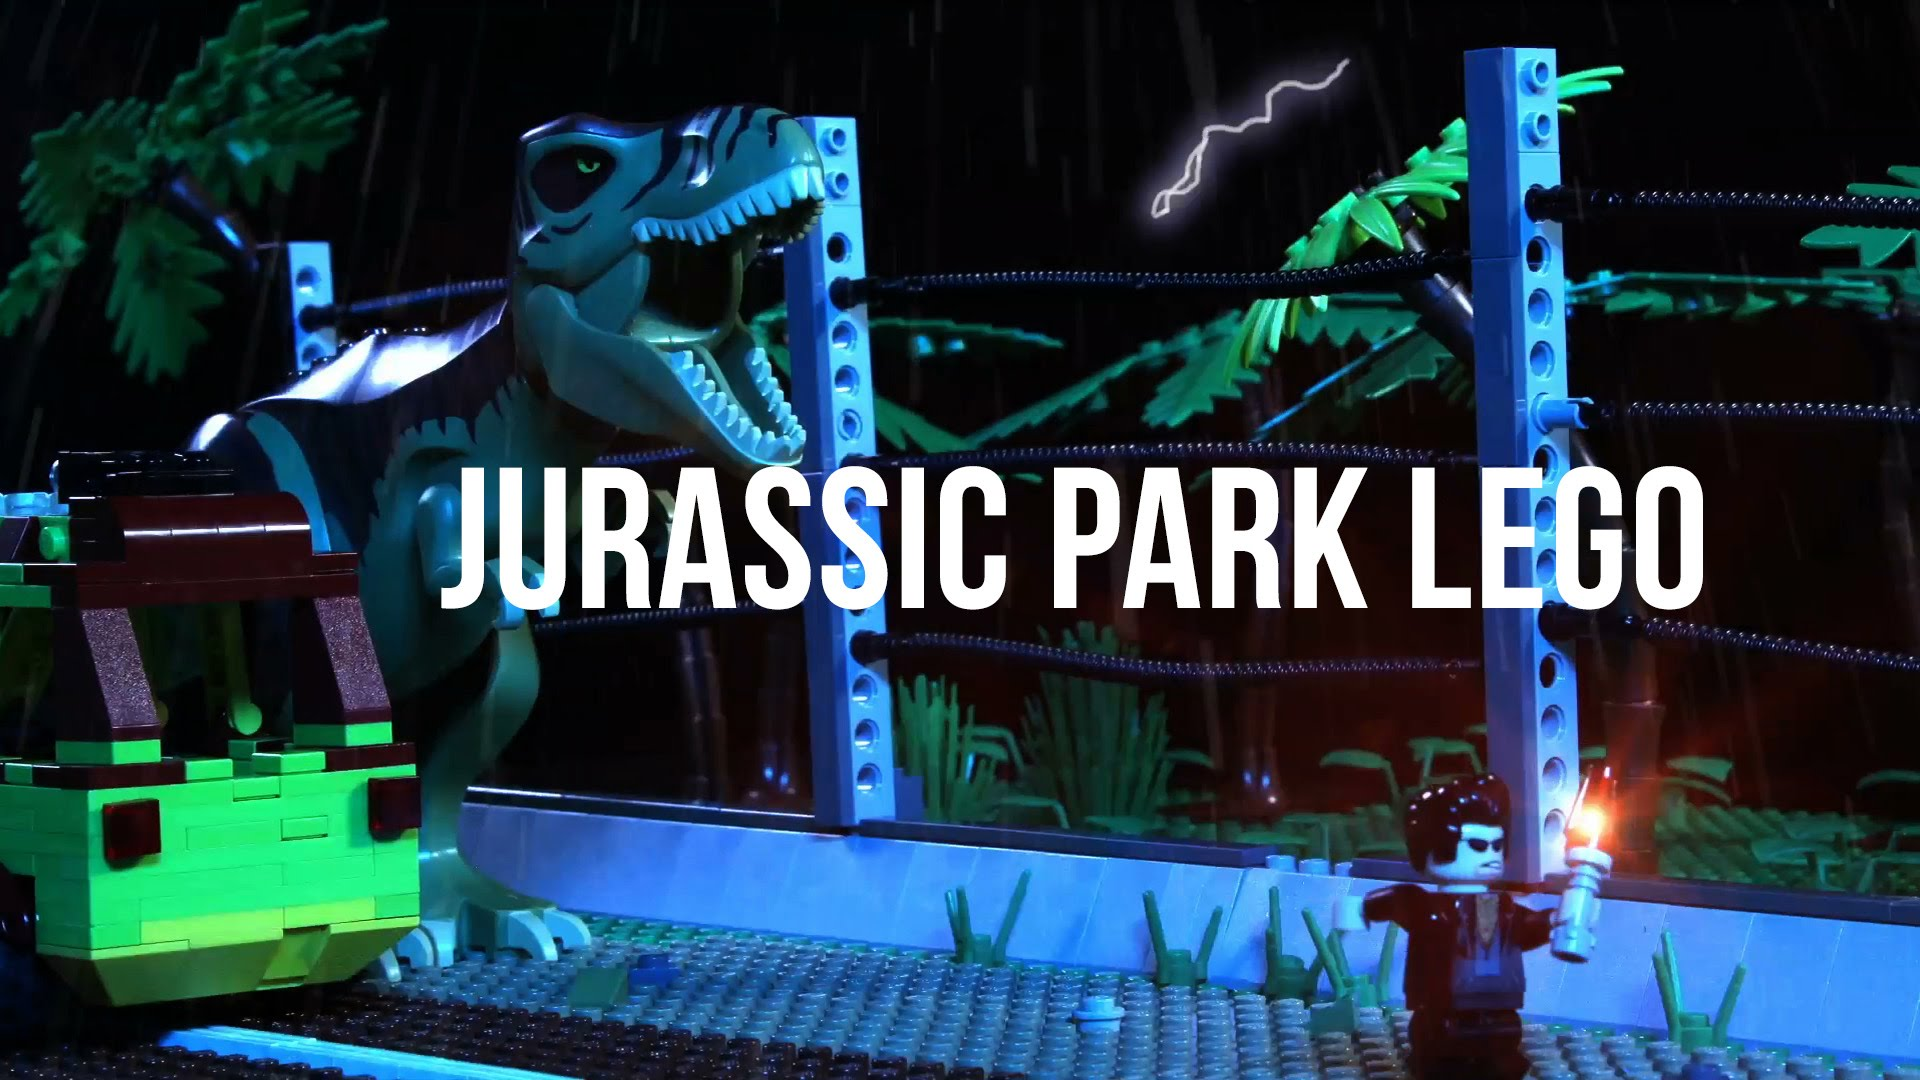 Father and daughter Lego Jurassic Park!